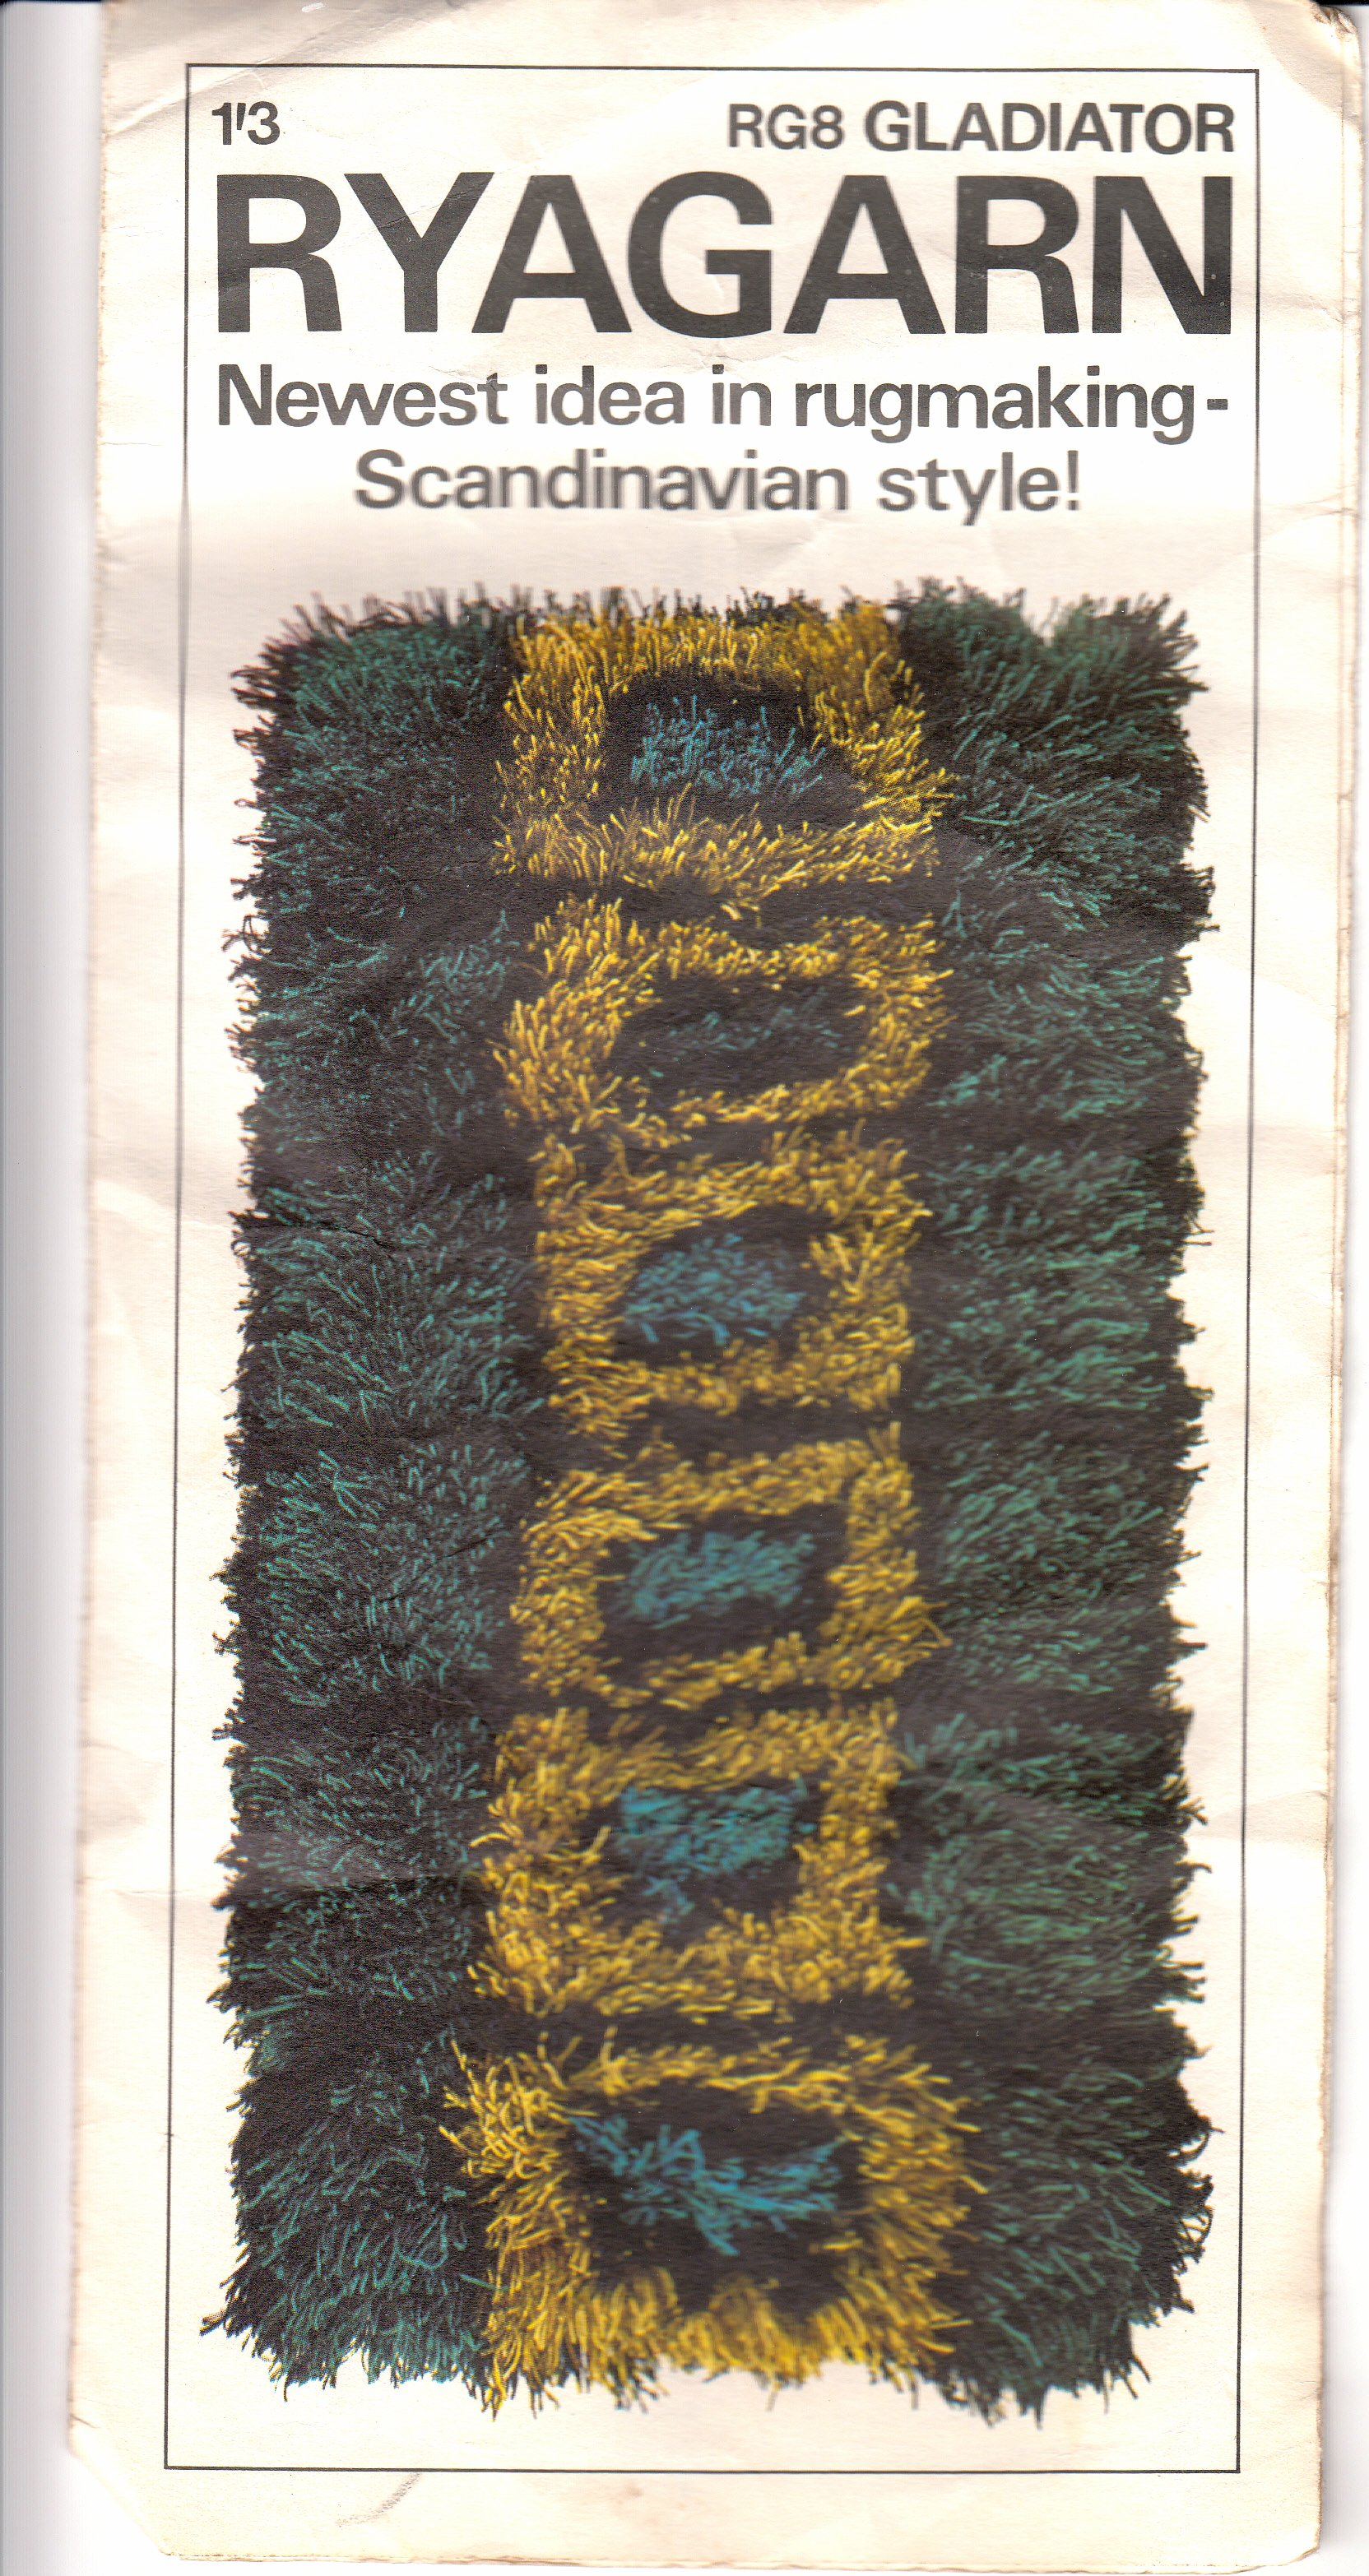 As Far I Can Tell Rya Was Their Only Foray Into The Home Rug Making Market